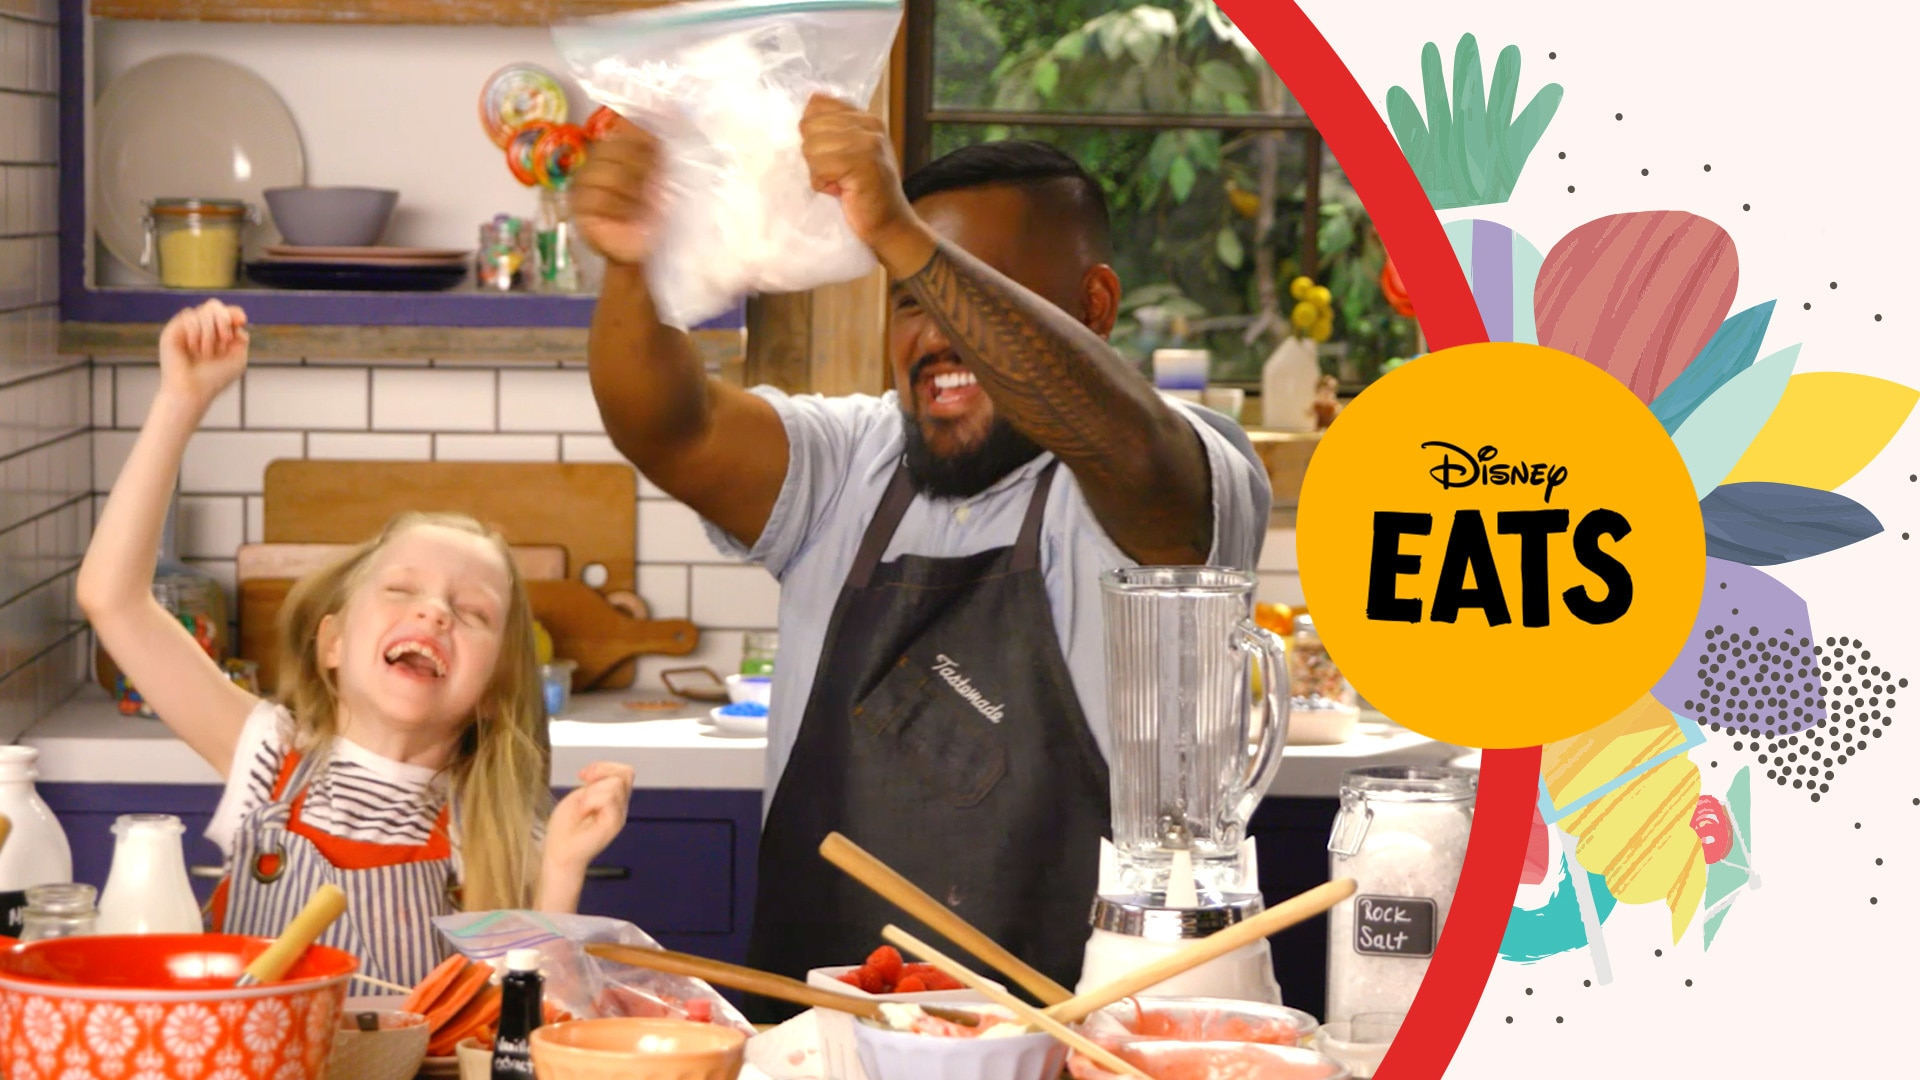 Chef Sheldon Simeon and Stella Mix Up A Crazy Milkshake | Kitchen Little: Disney Eats Edition